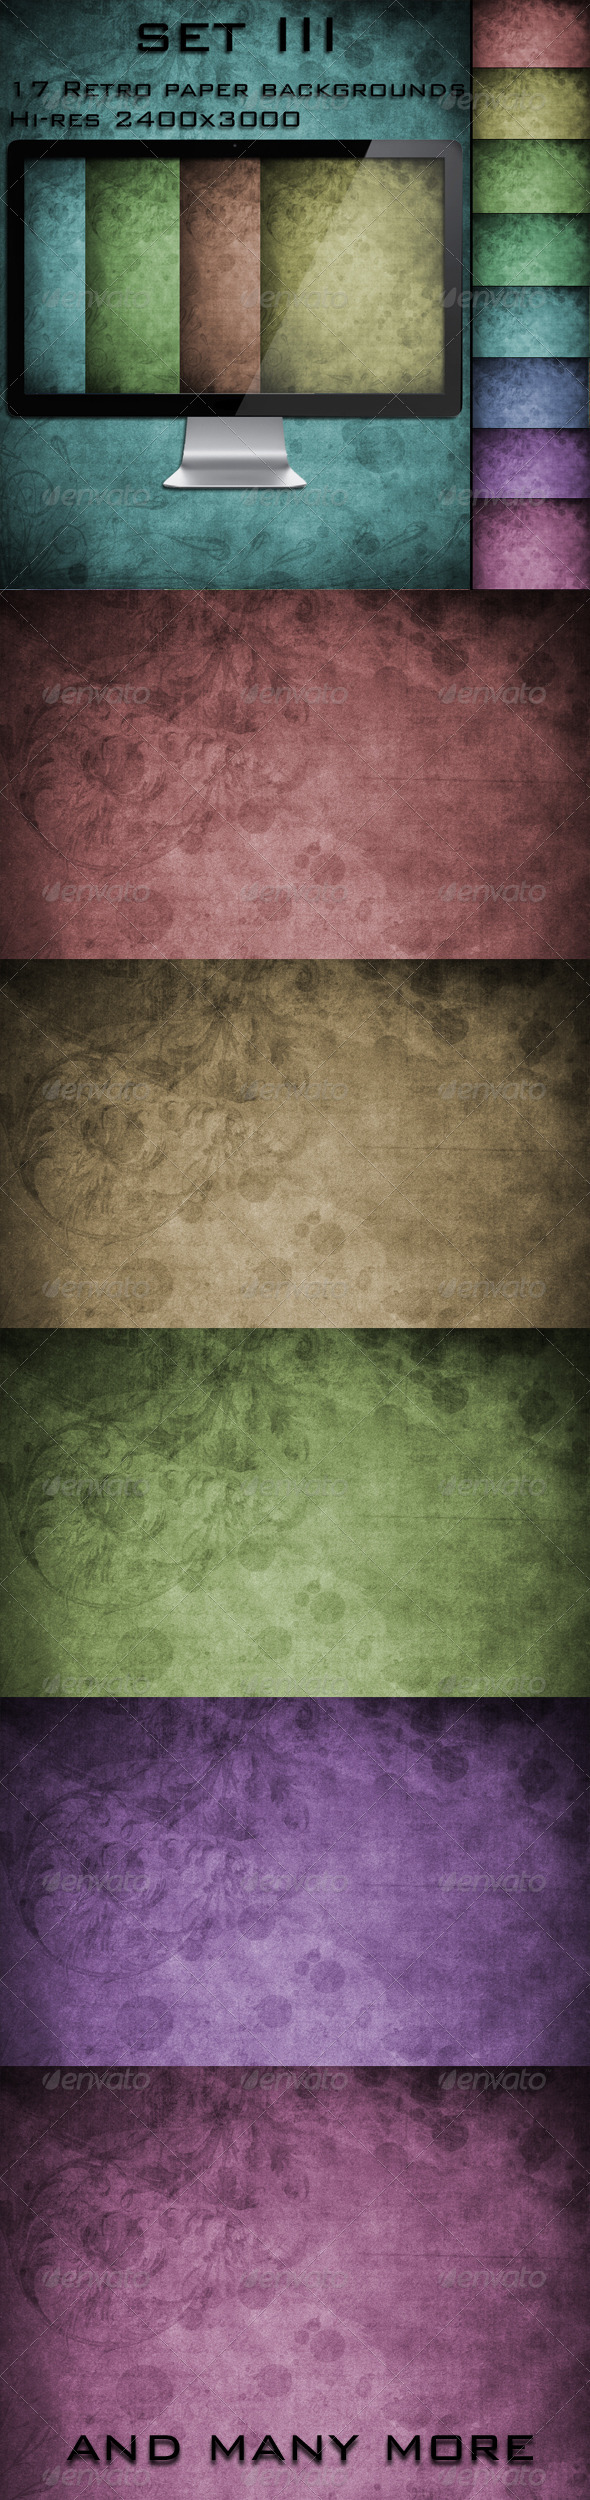 17 Retro Paper Backgrounds set III - Miscellaneous Backgrounds